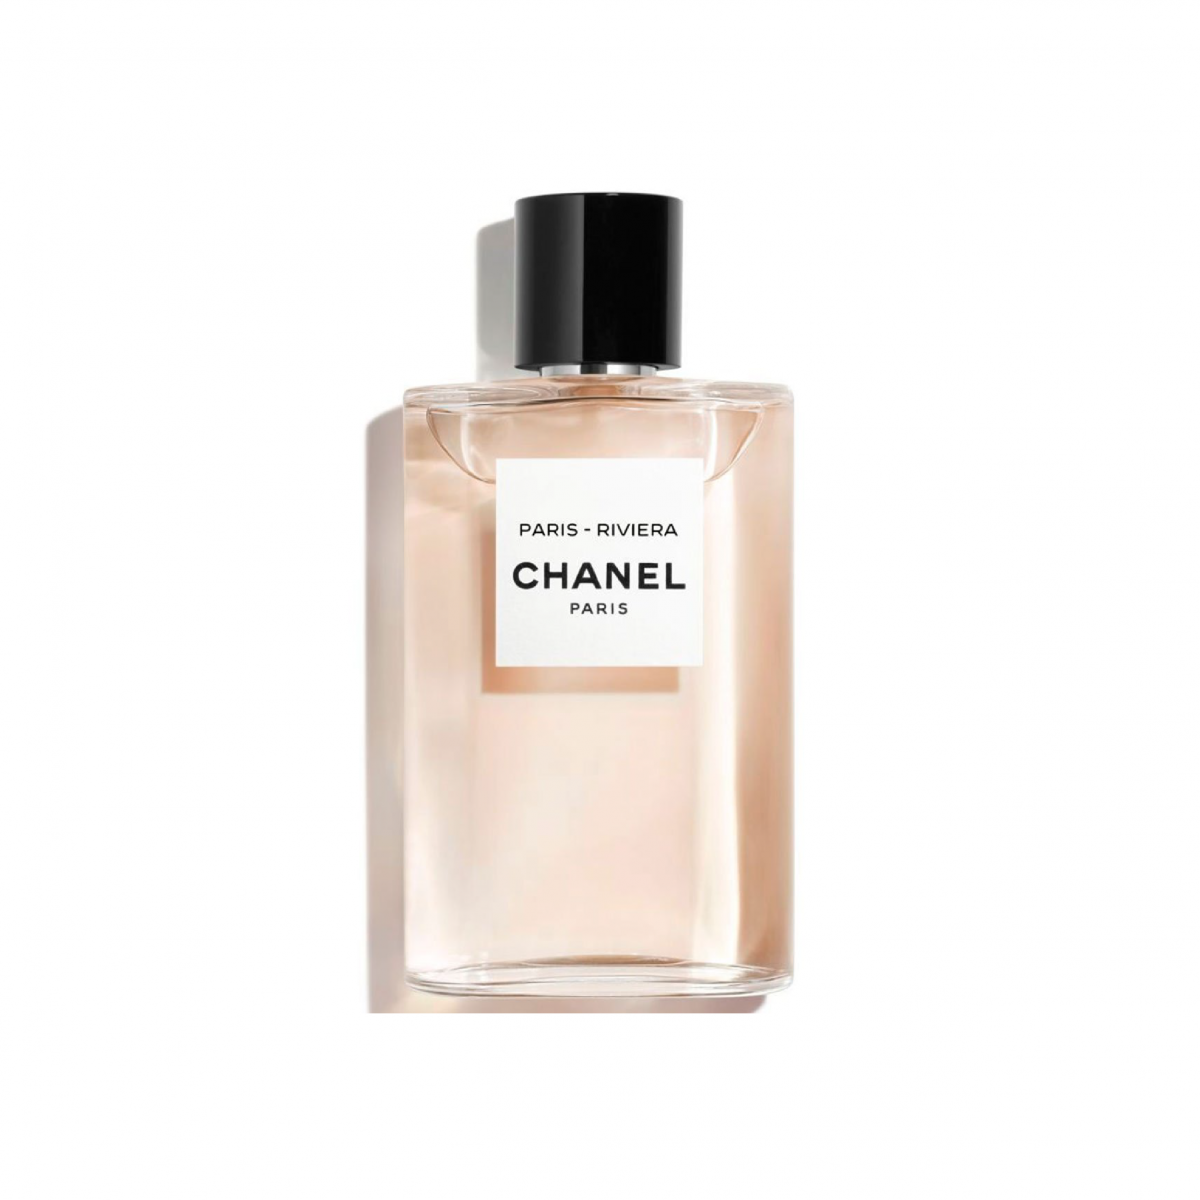 Chanel Paris Riviera Limited Edition EDT - EDT 125ml(Unisex)